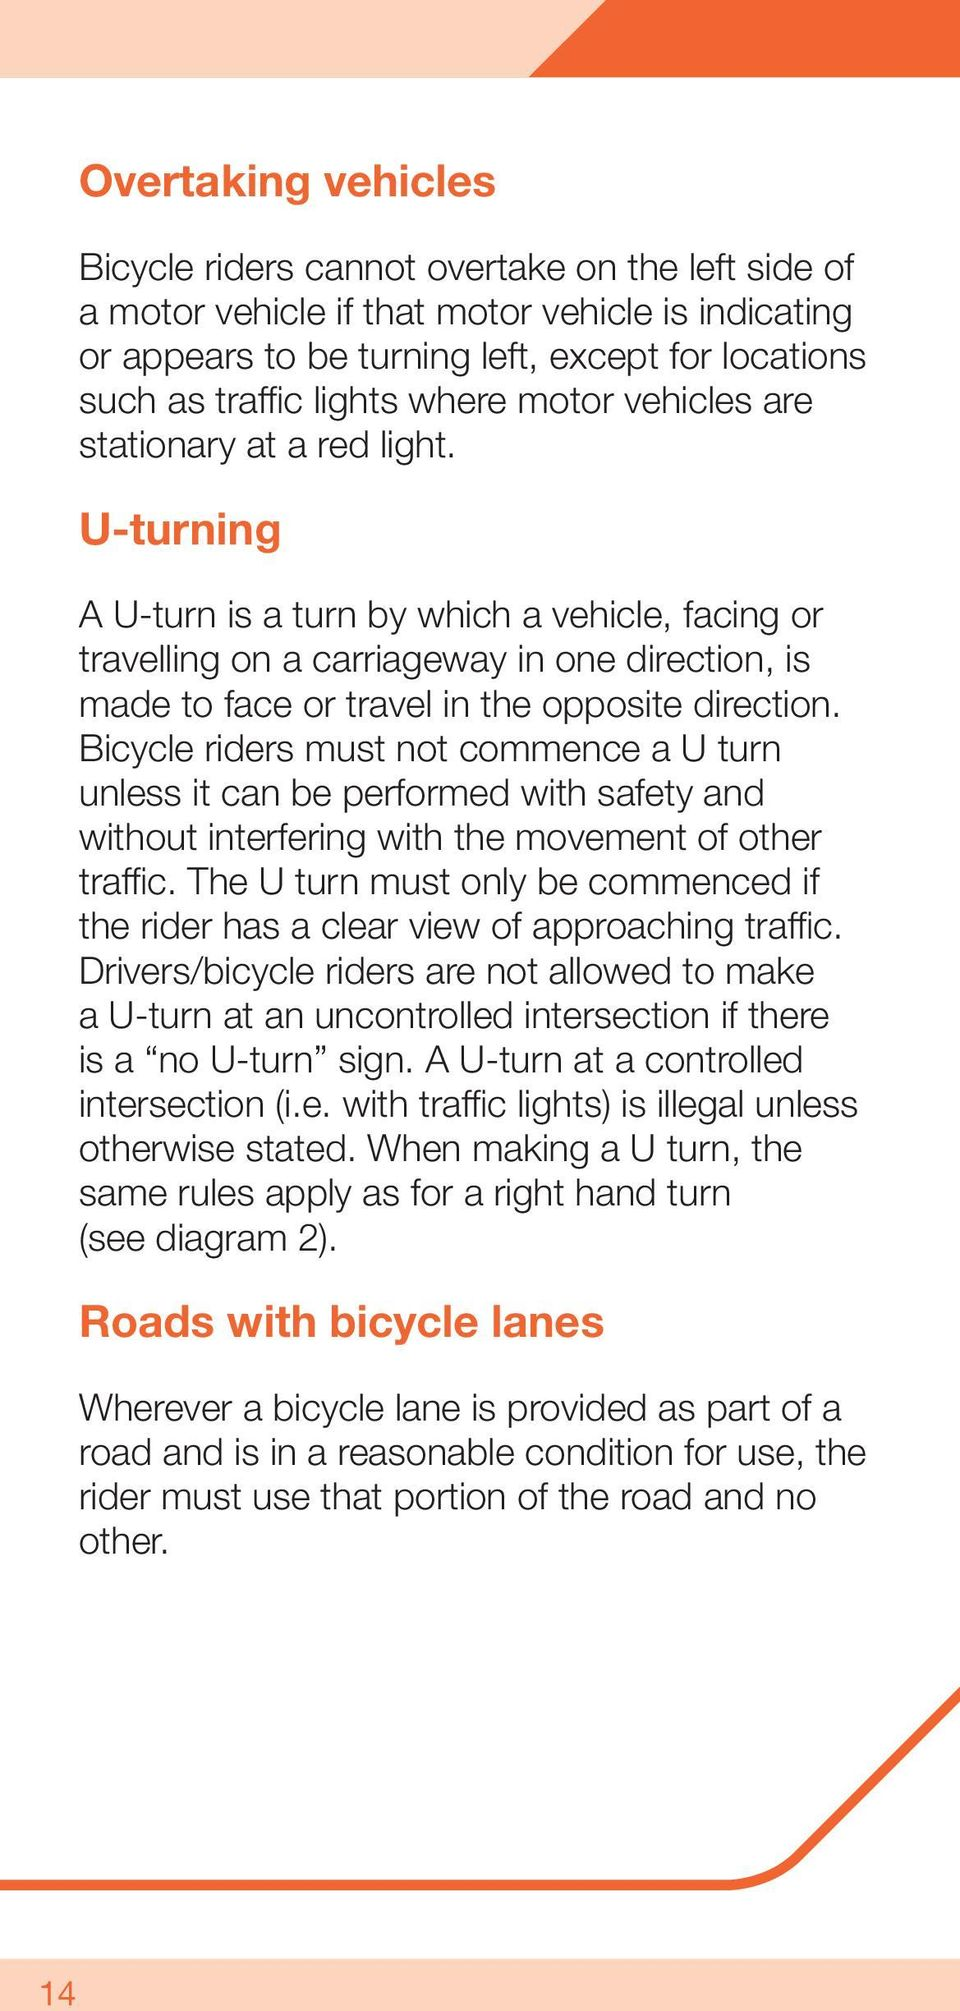 U-turning A U-turn is a turn by which a vehicle, facing or travelling on a carriageway in one direction, is made to face or travel in the opposite direction.